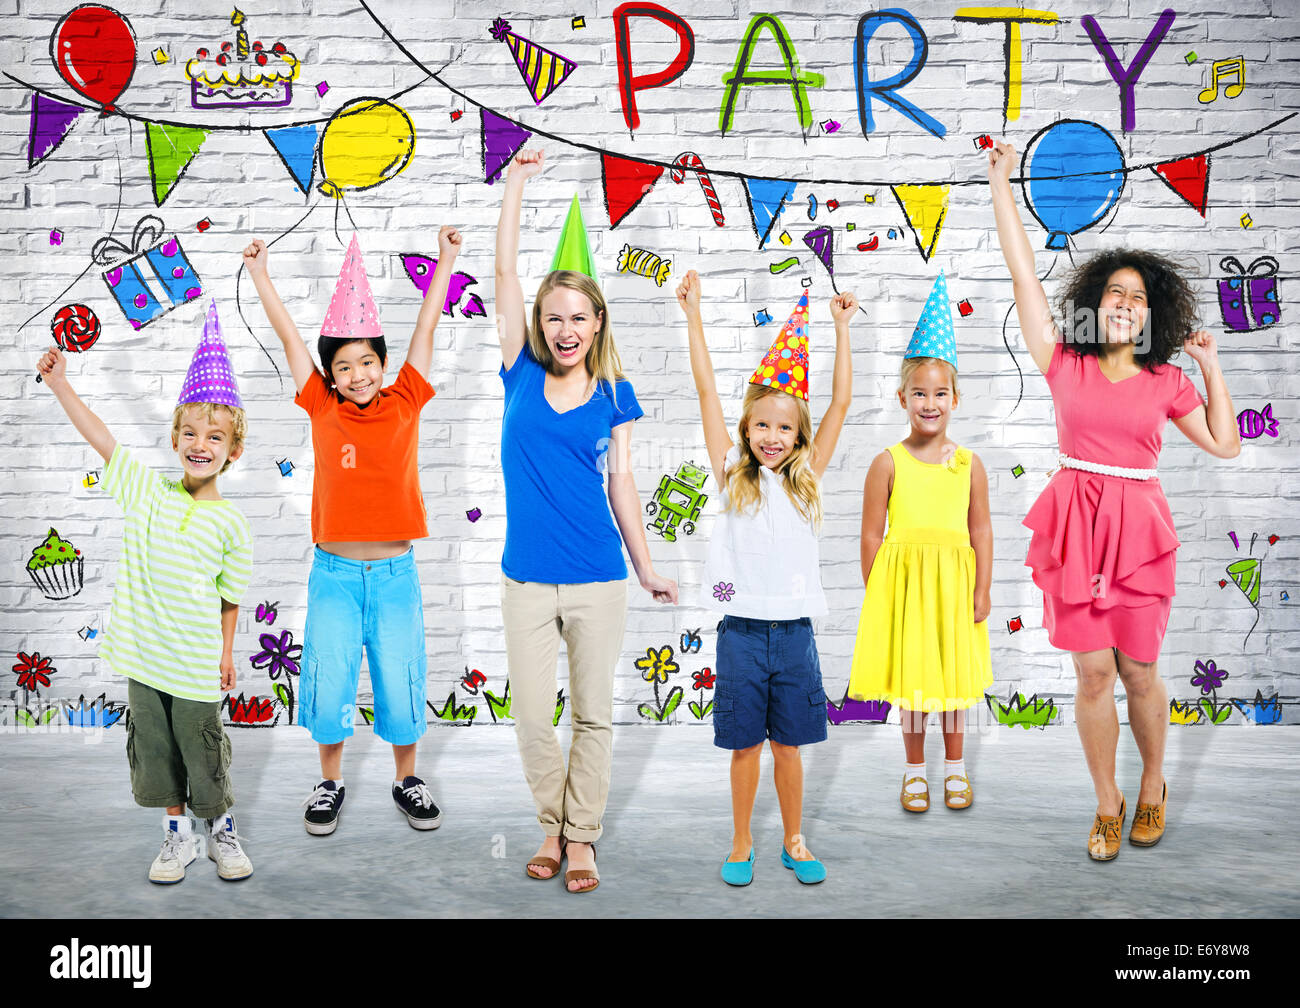 Kids Birthday Party - Stock Image